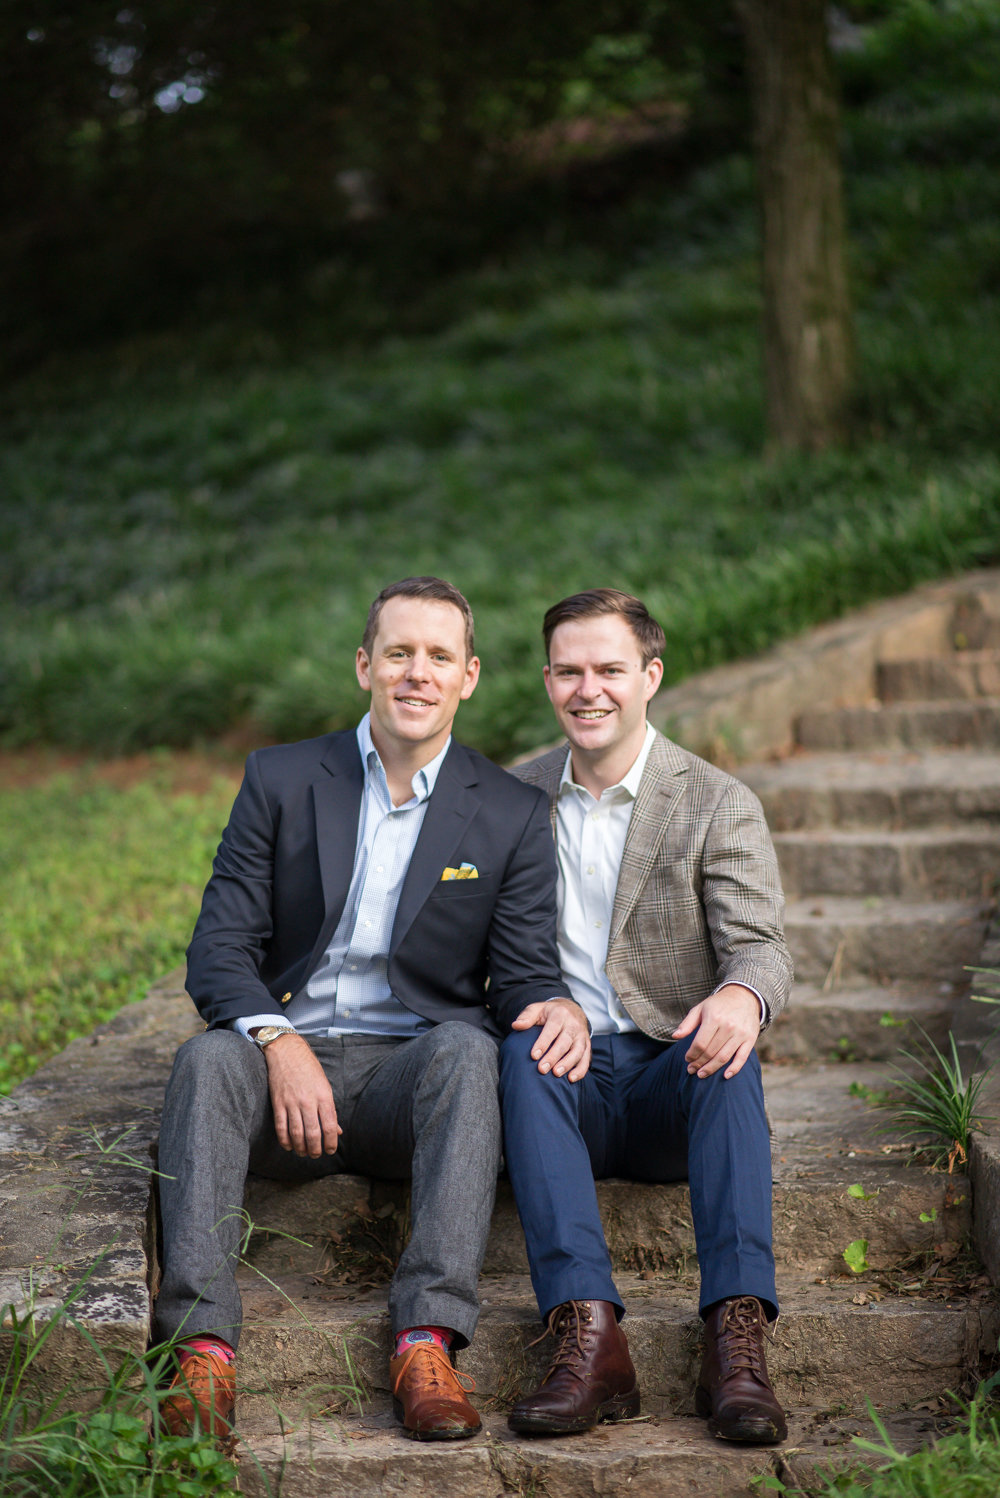 Gay Engagement Session Atlanta Georgia Wedding Photographer-22